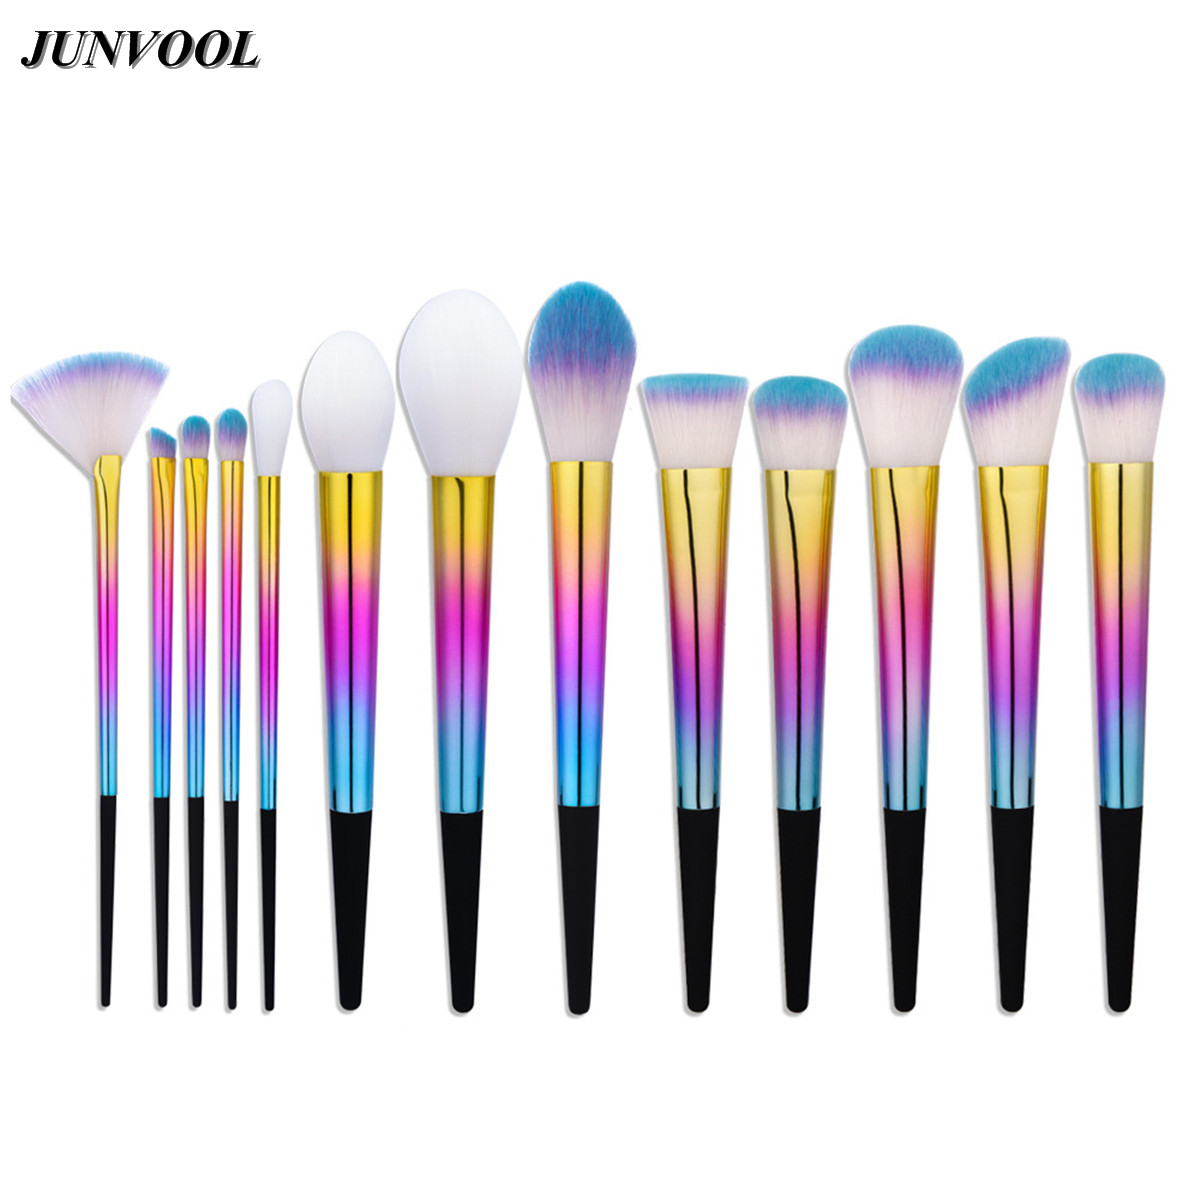 13Pcs Rainbow Makeup Brushes Set Kit Professional Foundation Eyeshadow Lip Fan Brush Tool Beauty Cosmetic Tools Pincel Maquiagem polaroid sunglasses men metal polarized male sun glasses for men driving sunglasses famous brand designer masculine sun glasses